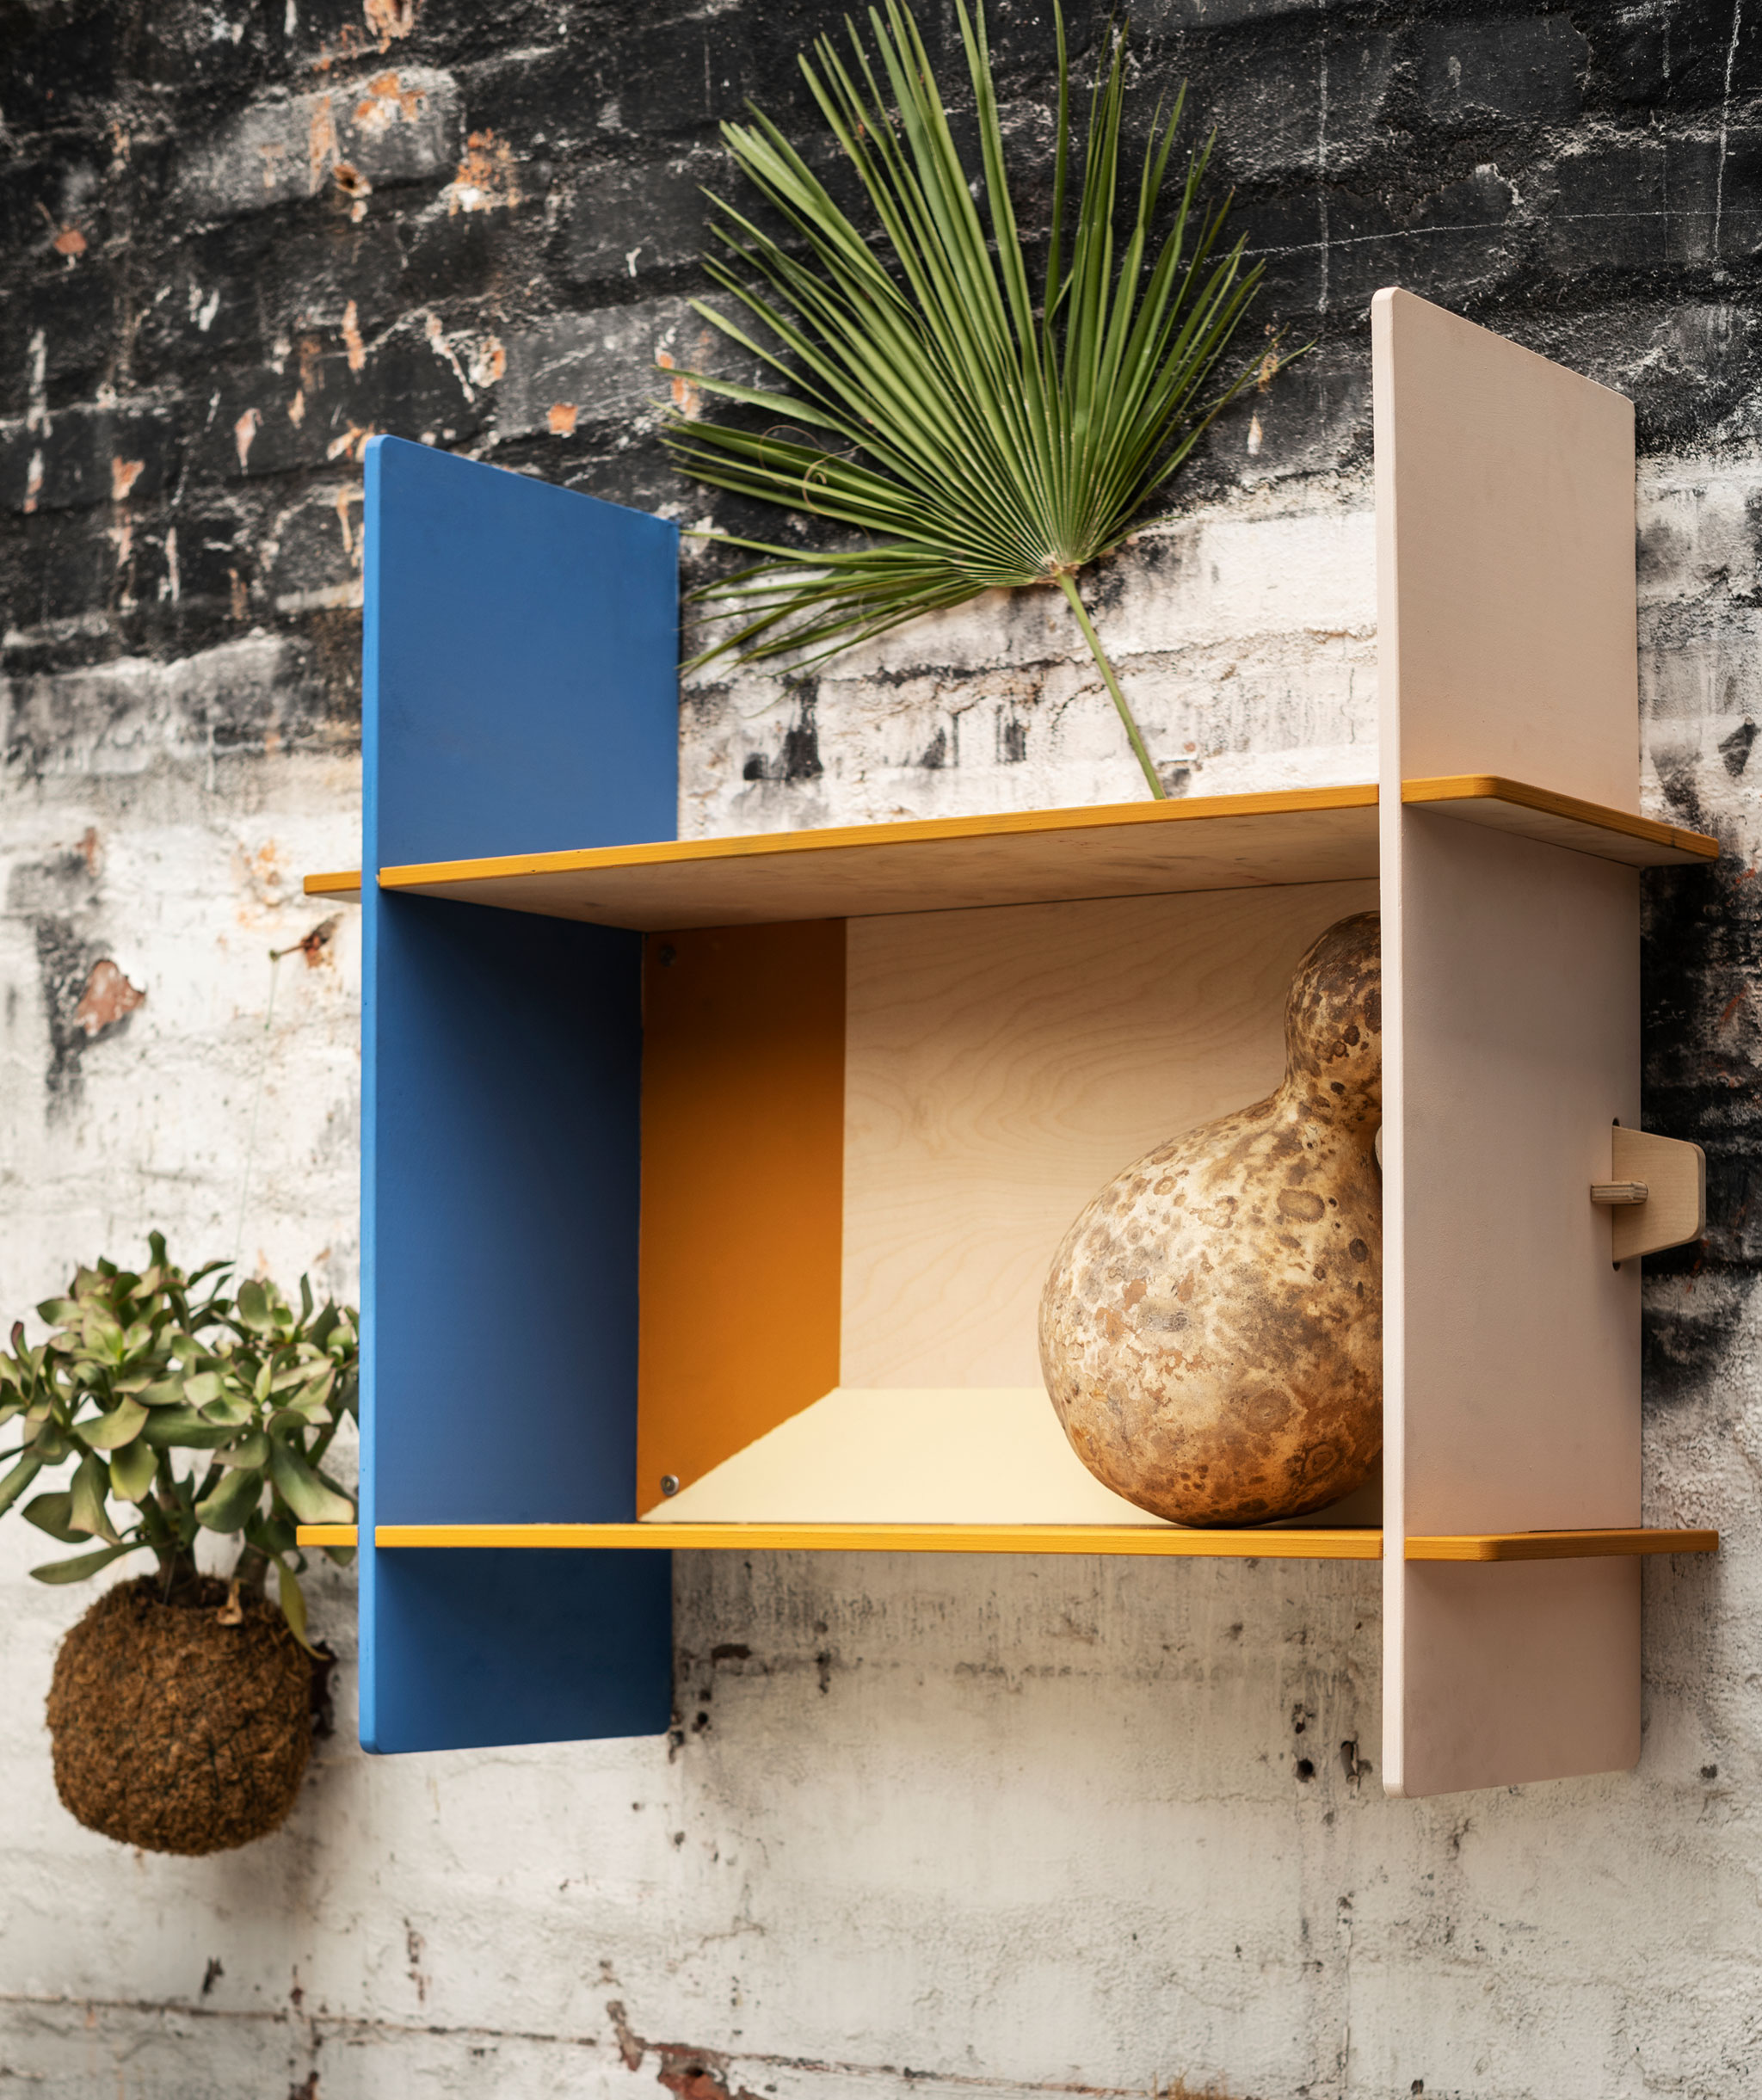 Small, rectangular wall shelf made of plywood, mounted on a rough brick wall (presumably outdoors).